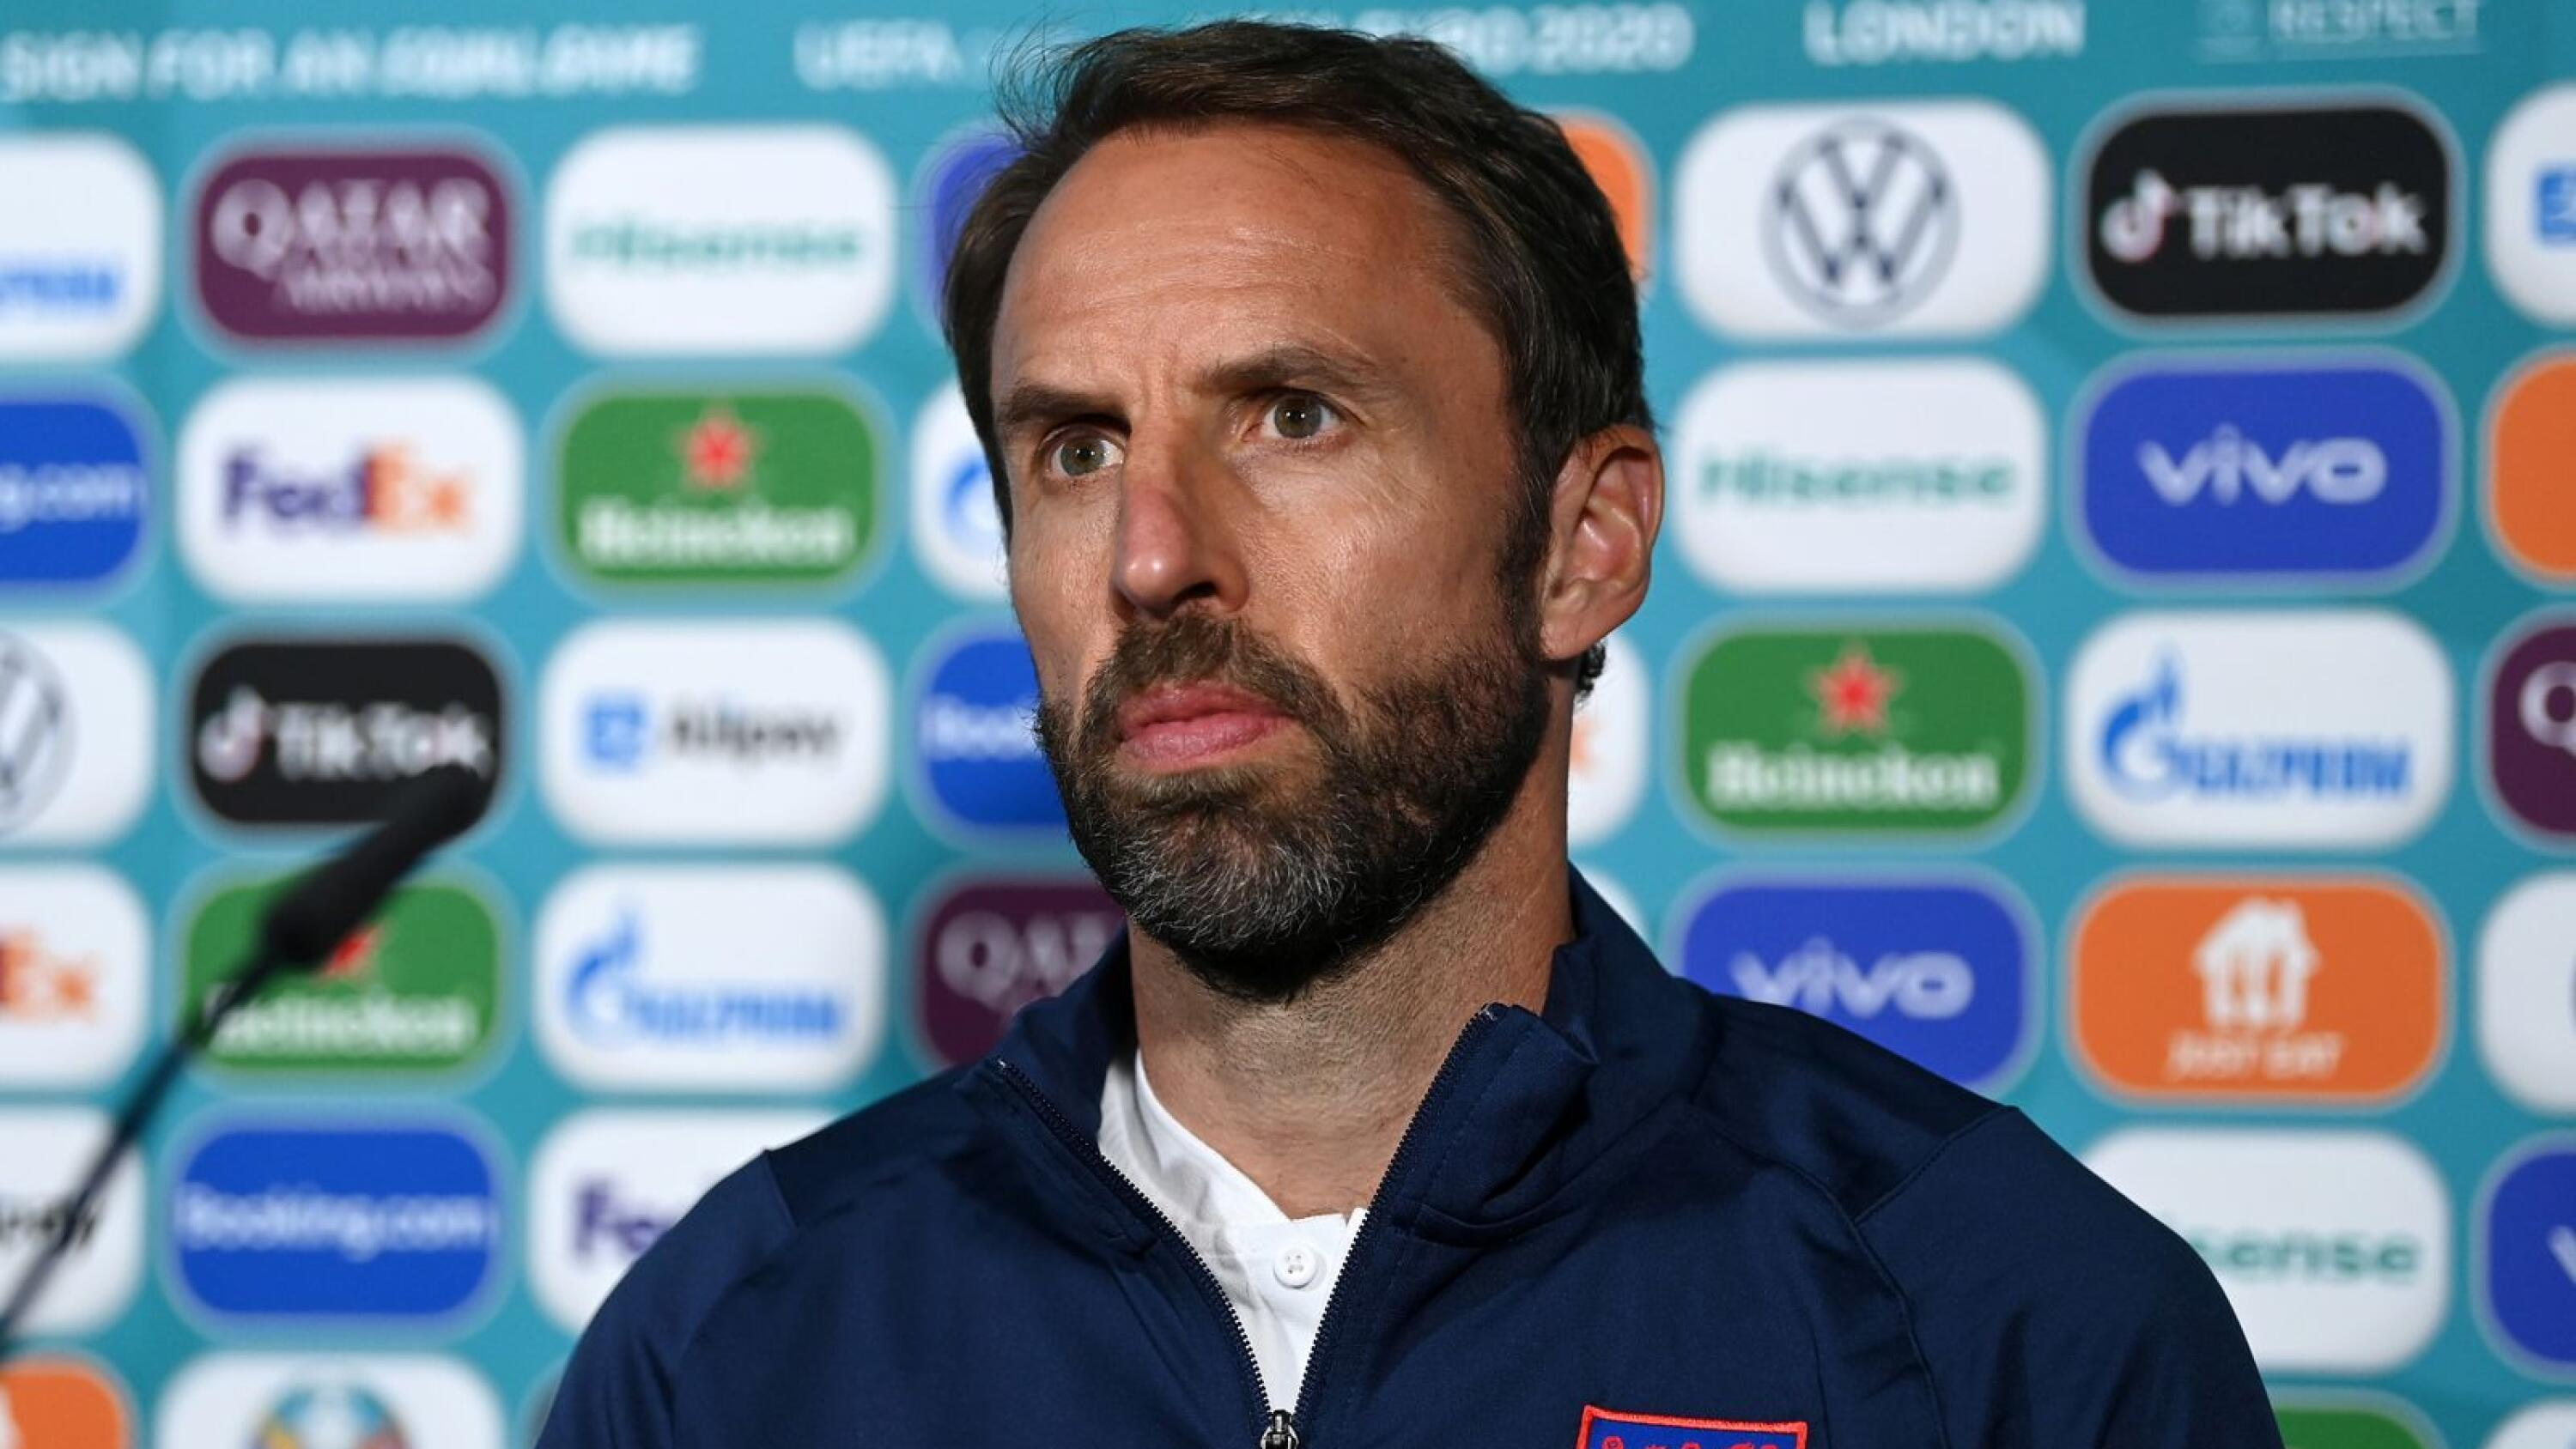 England manager Gareth Southgate during a press conference ahead of their Euro 2020 match against Scotland